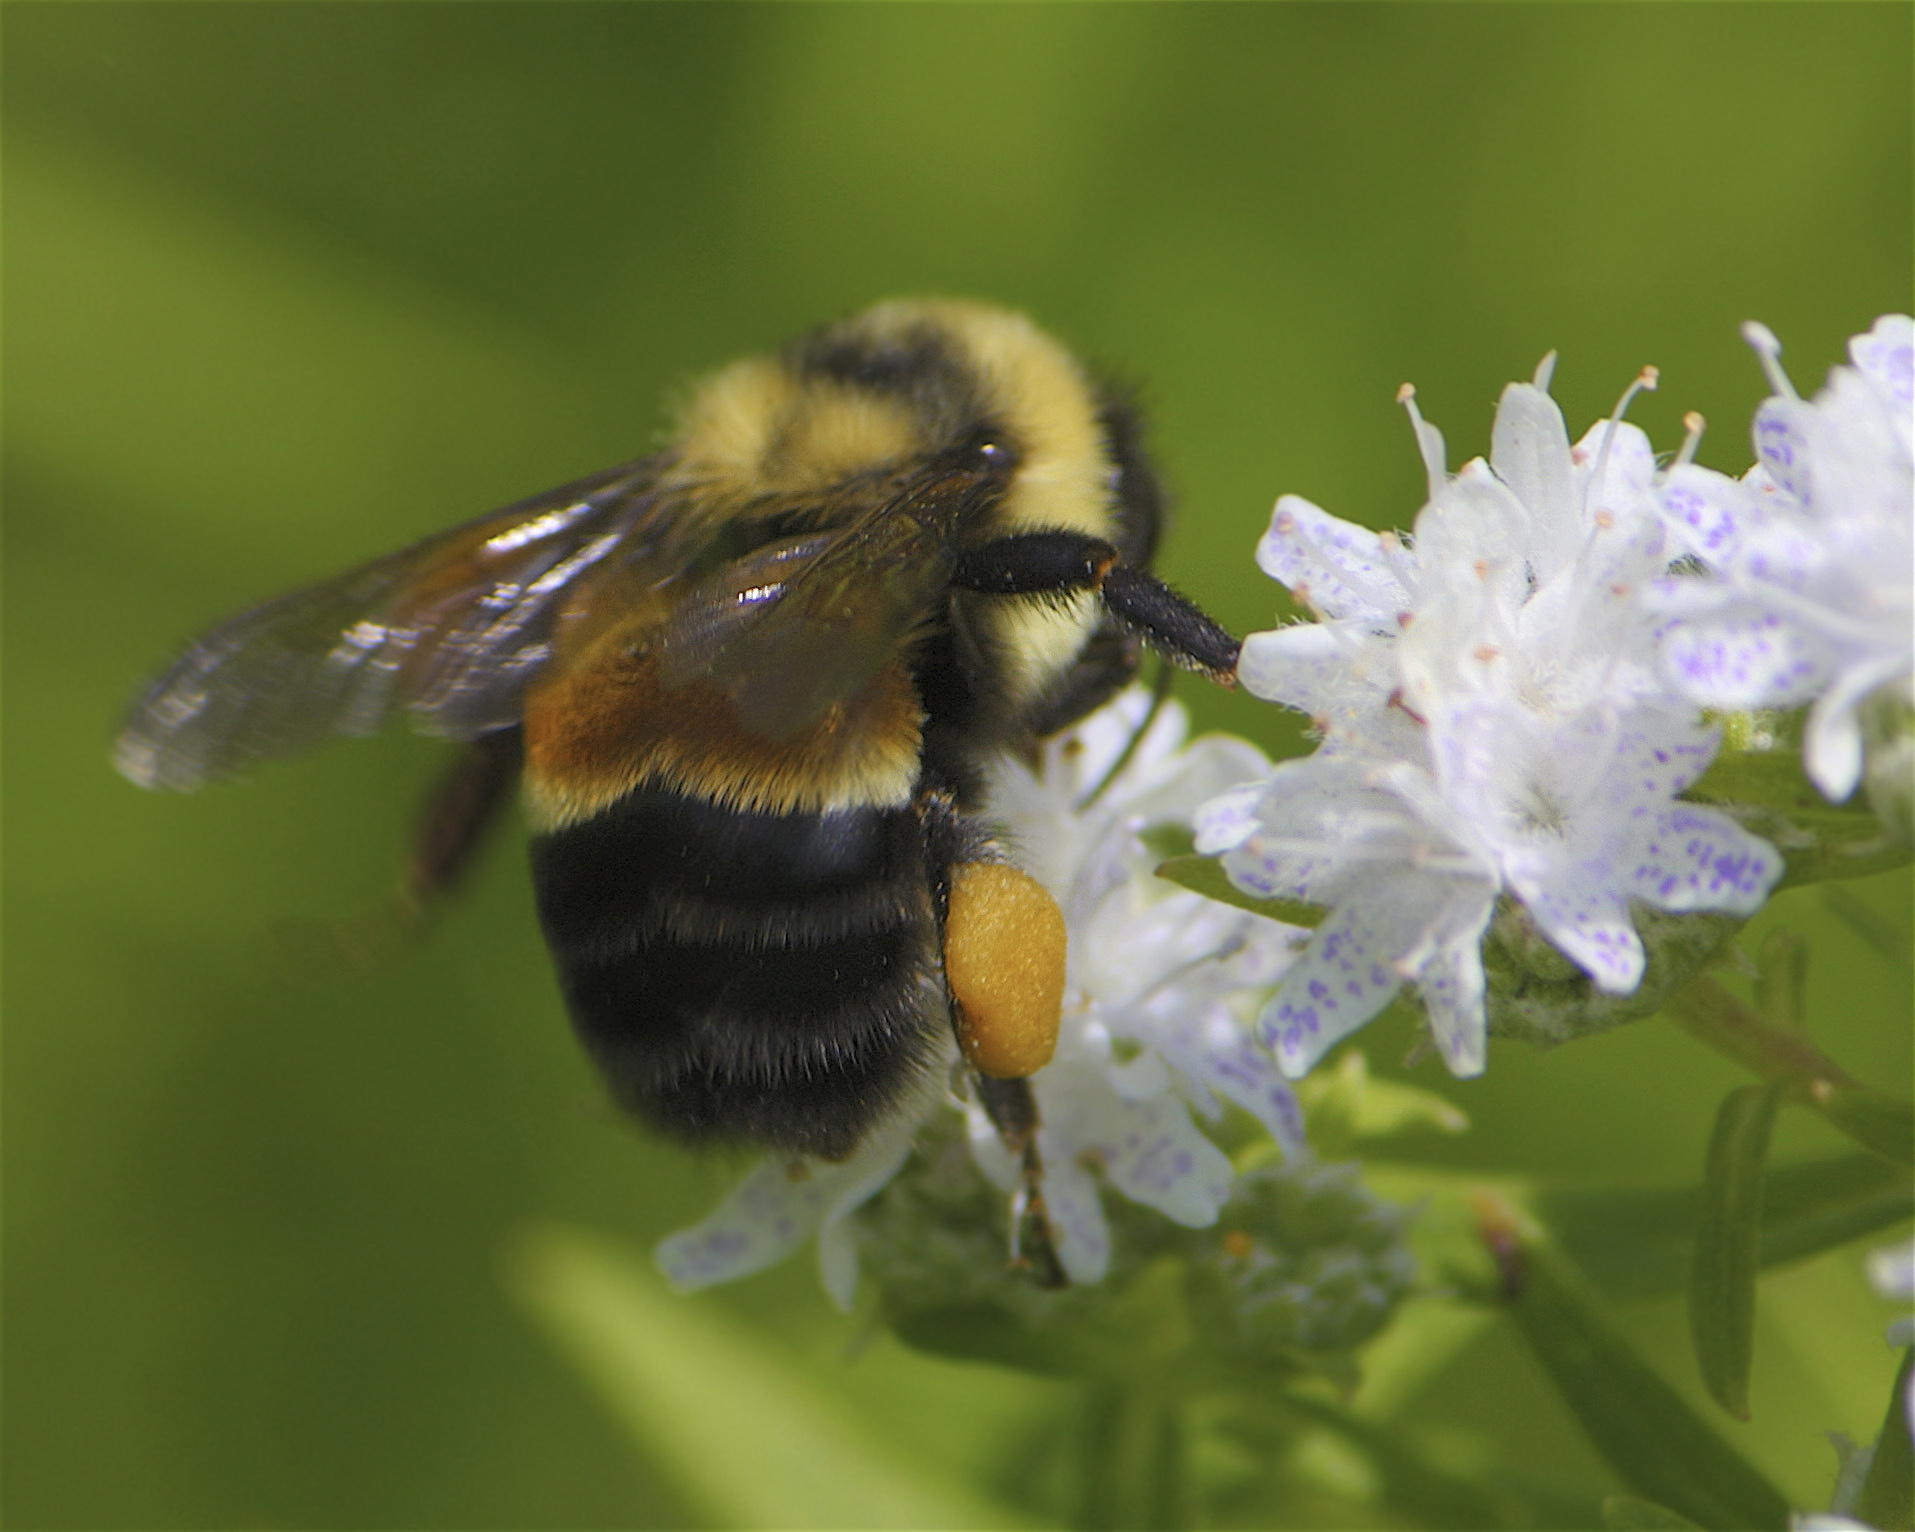 The rusty-patched bumblebee is an endangered species in Wisconsin. The Xerces Society provides resources on invertebrates like bees and many of our other important pollinators.  Photo: Dan Mullen, Creative Commons.